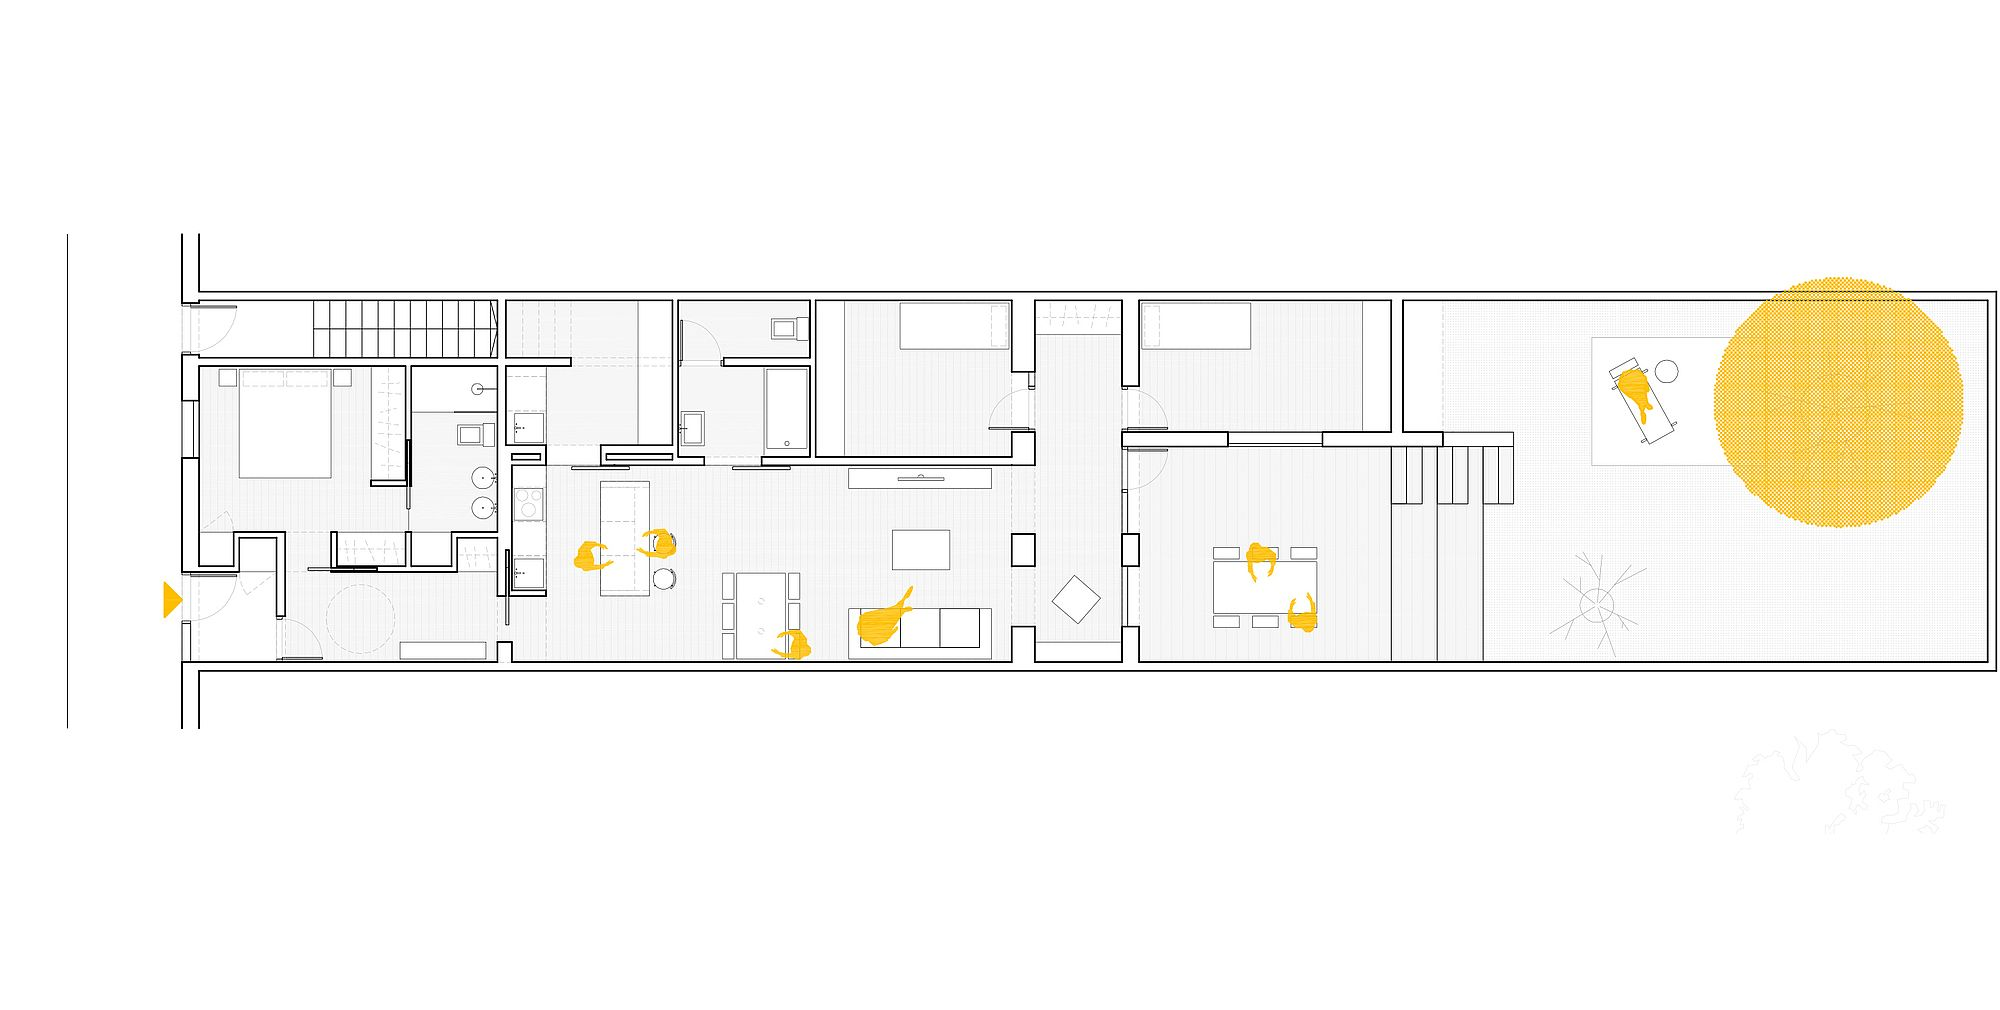 Floor plan of Refurbishment in Sarrià designed by Sergi Pons architects